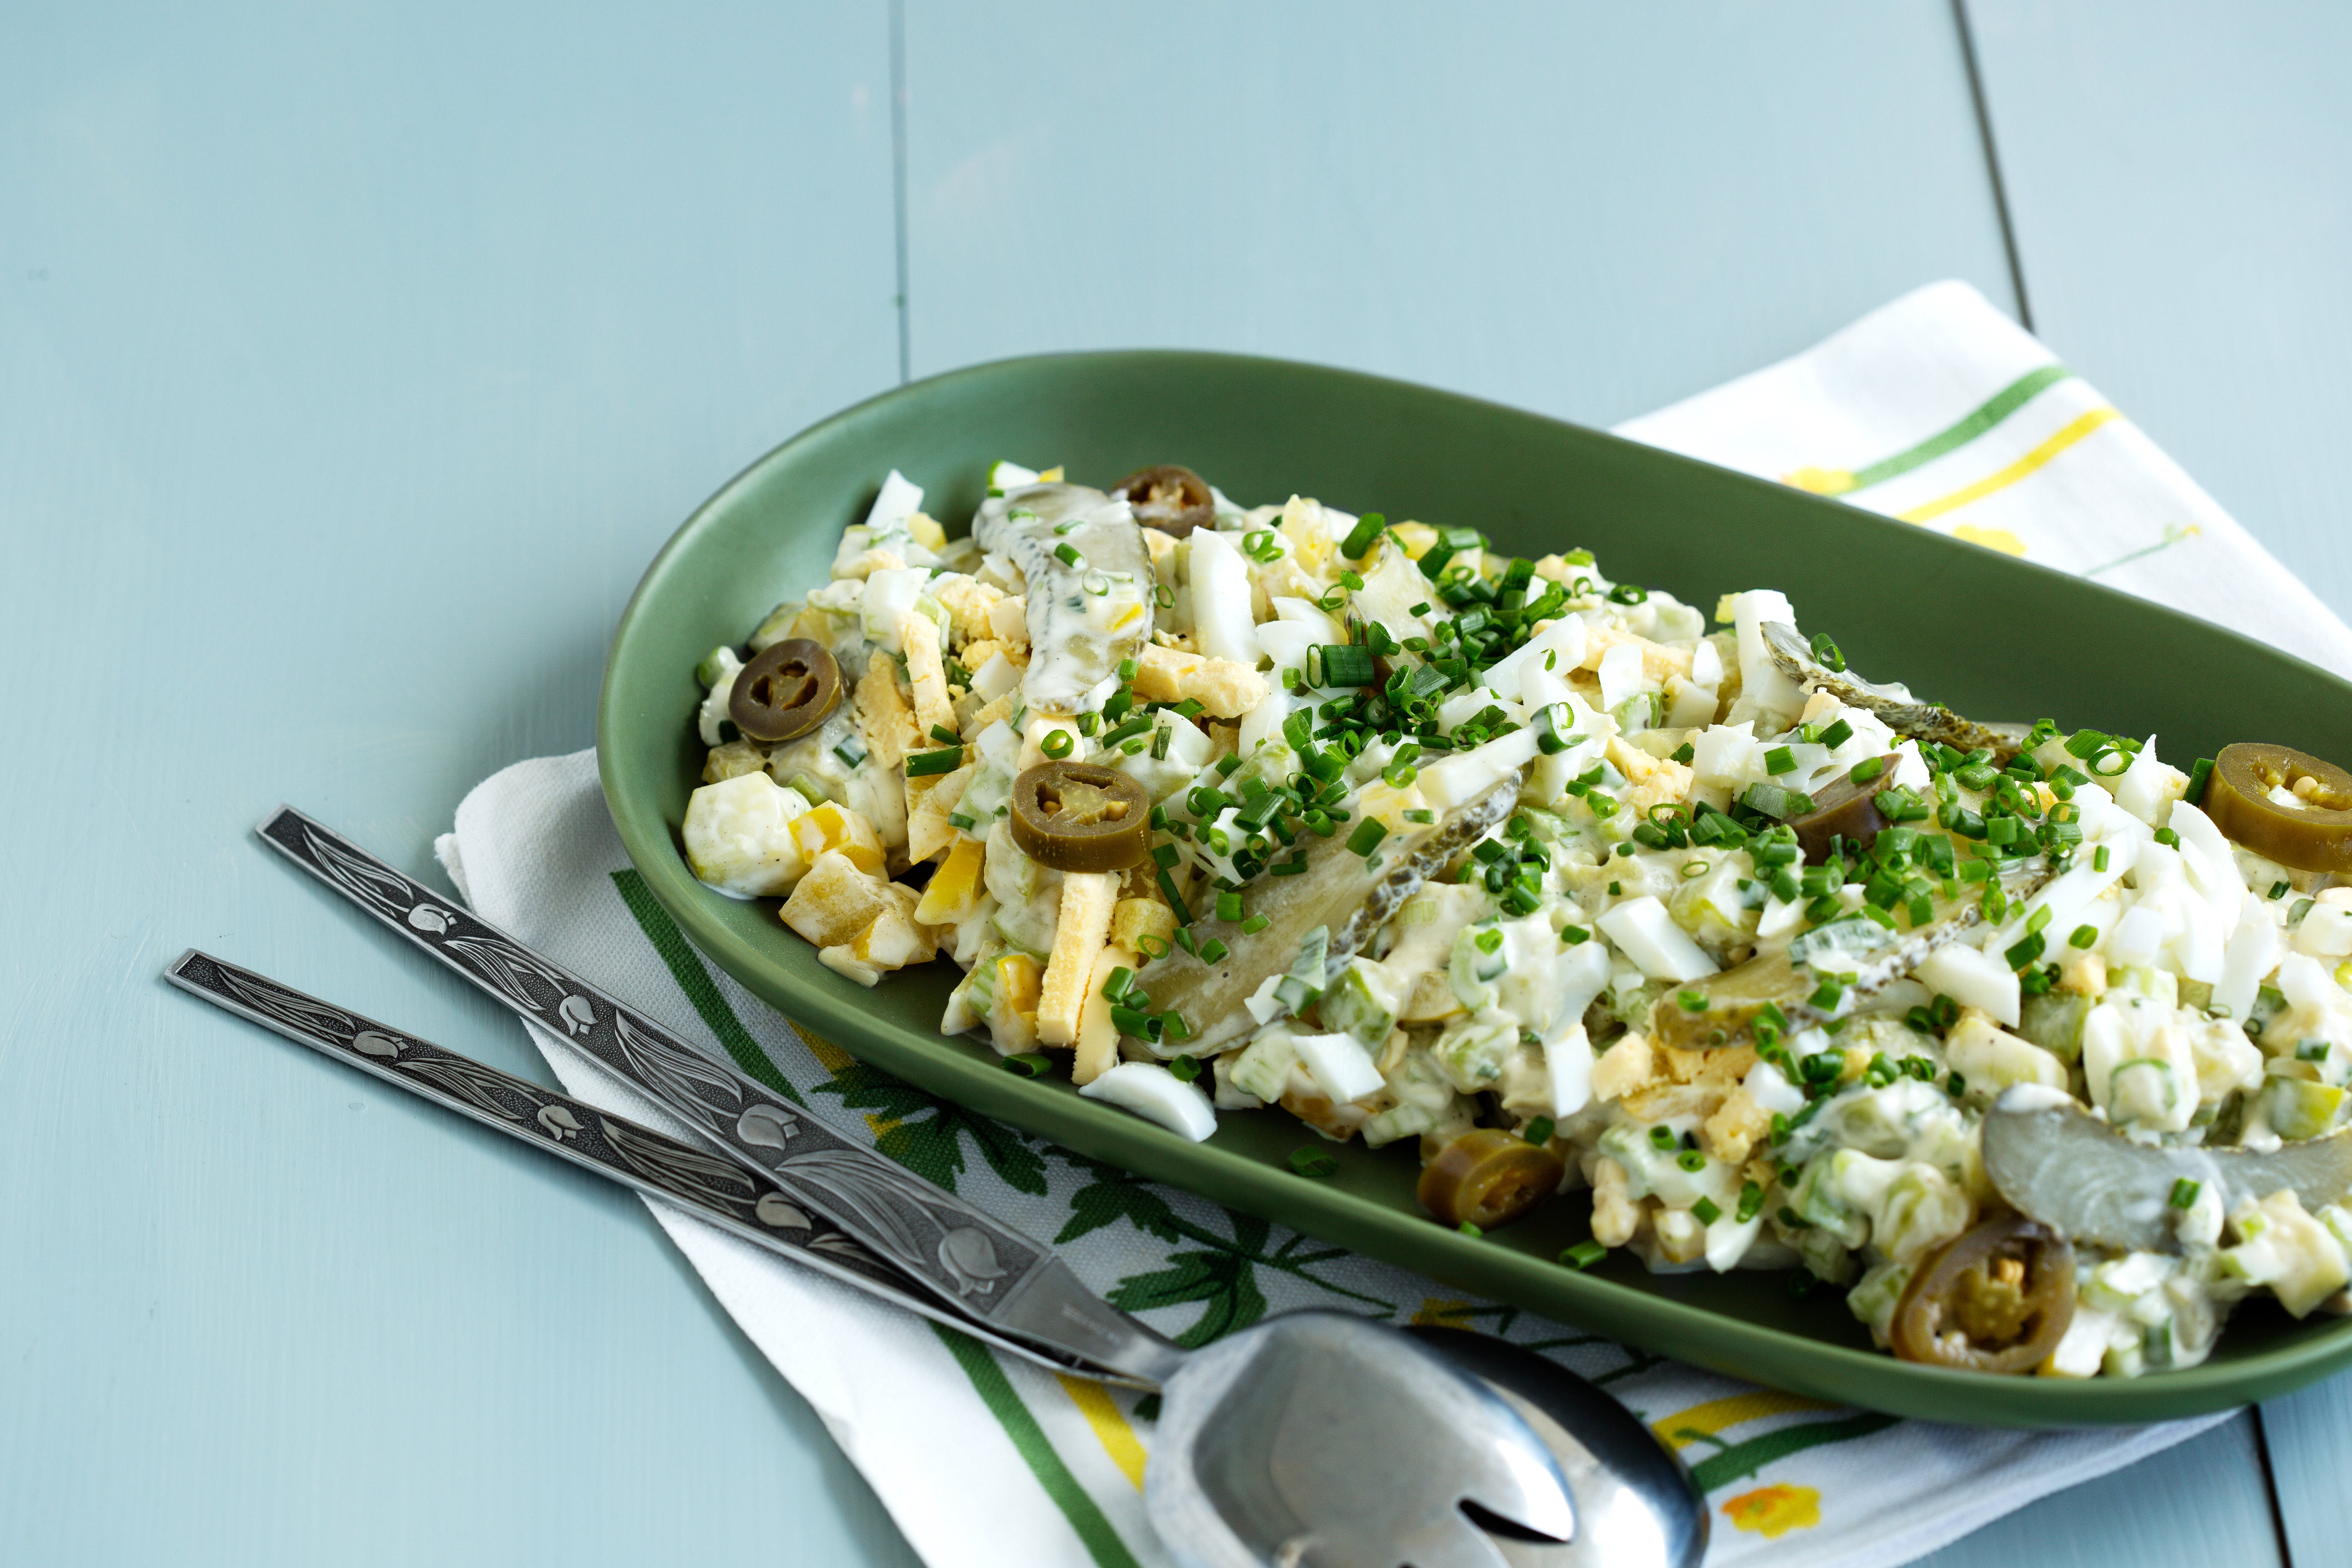 Zucchini salad with eggs